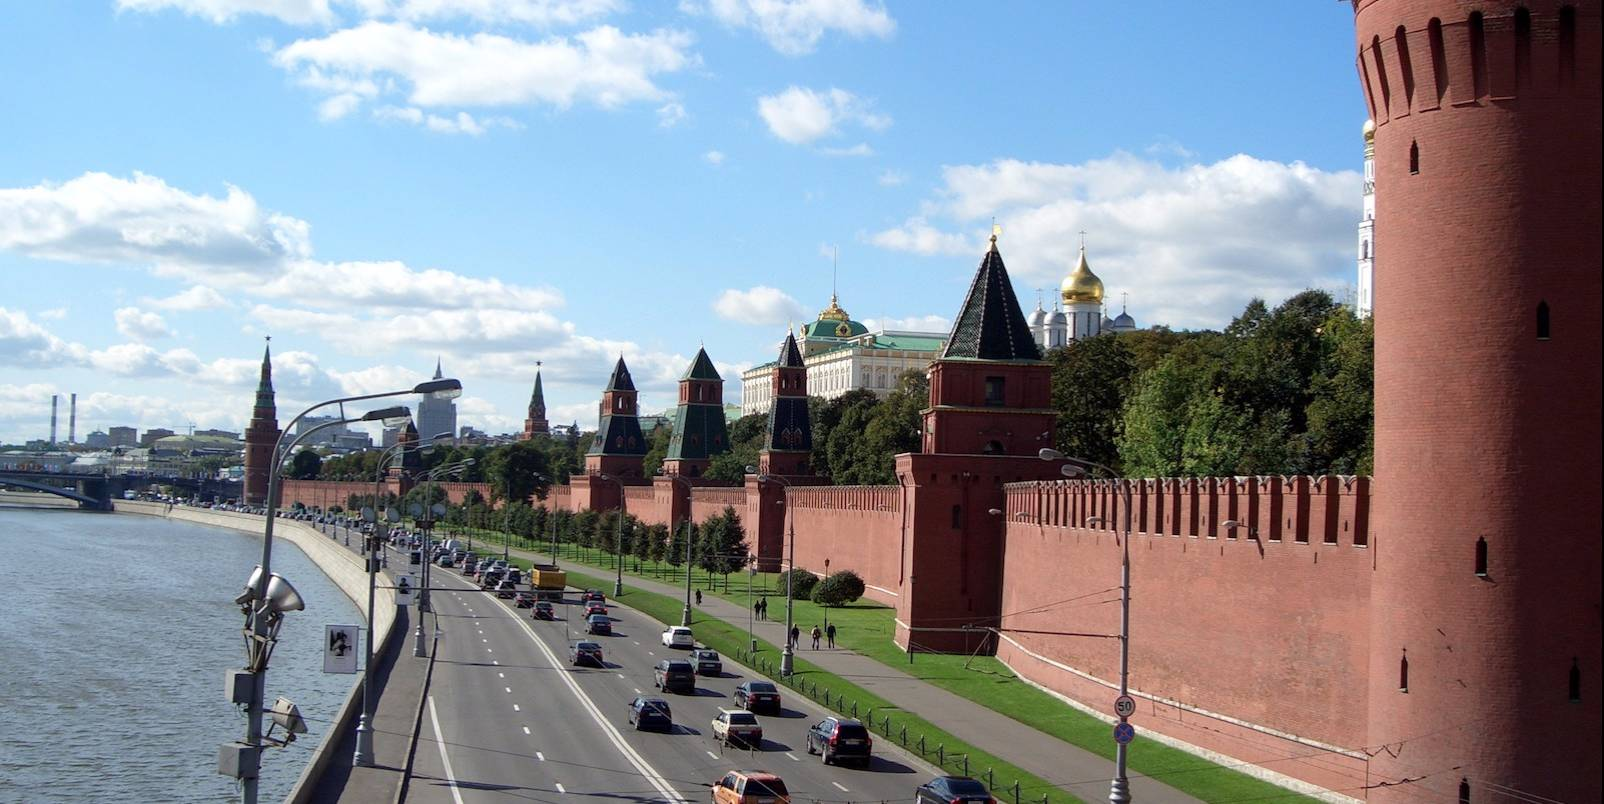 The Kremlin frome the river front